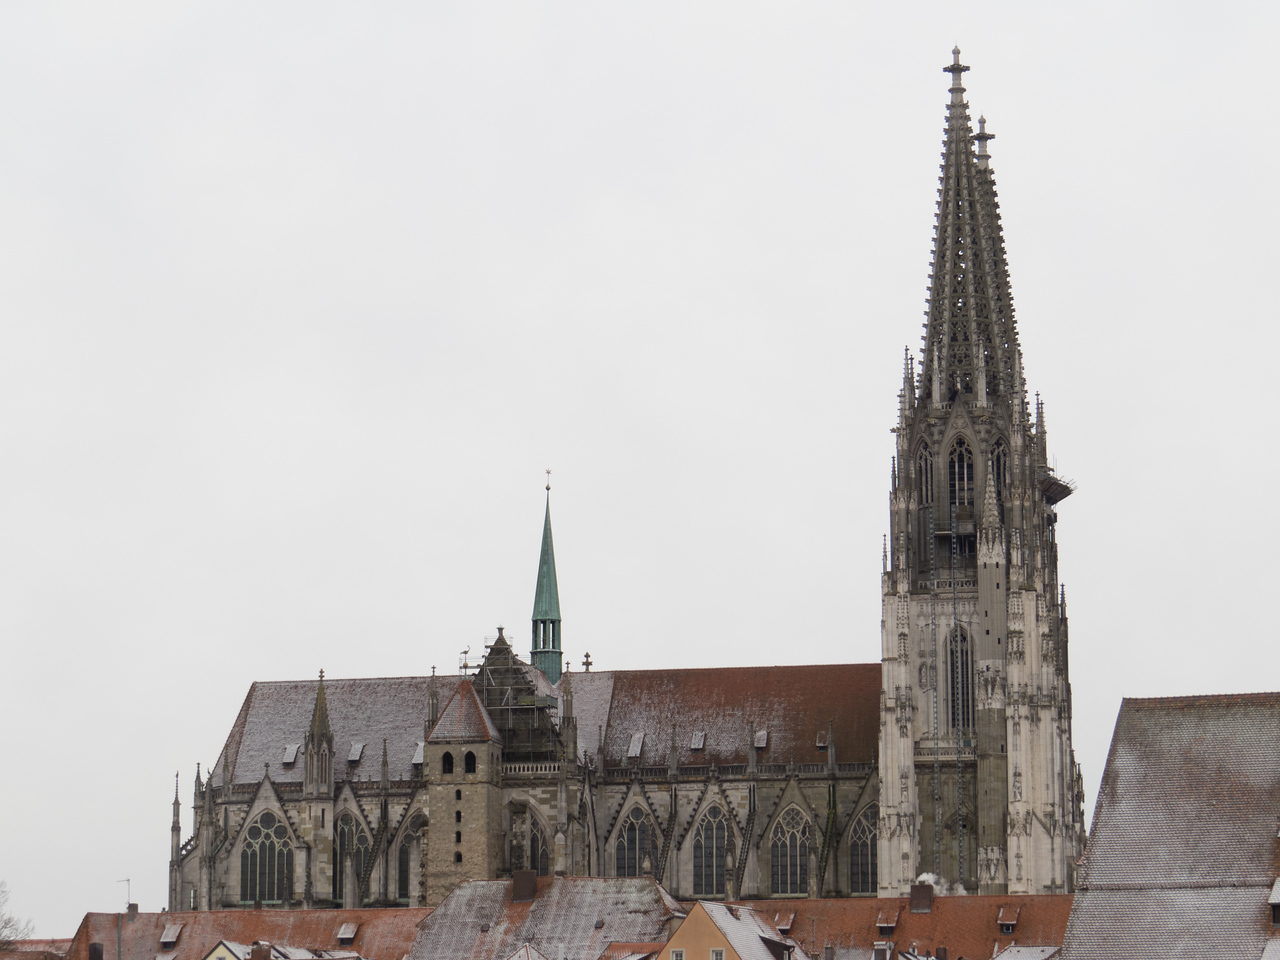 St. Peter's Cathedral